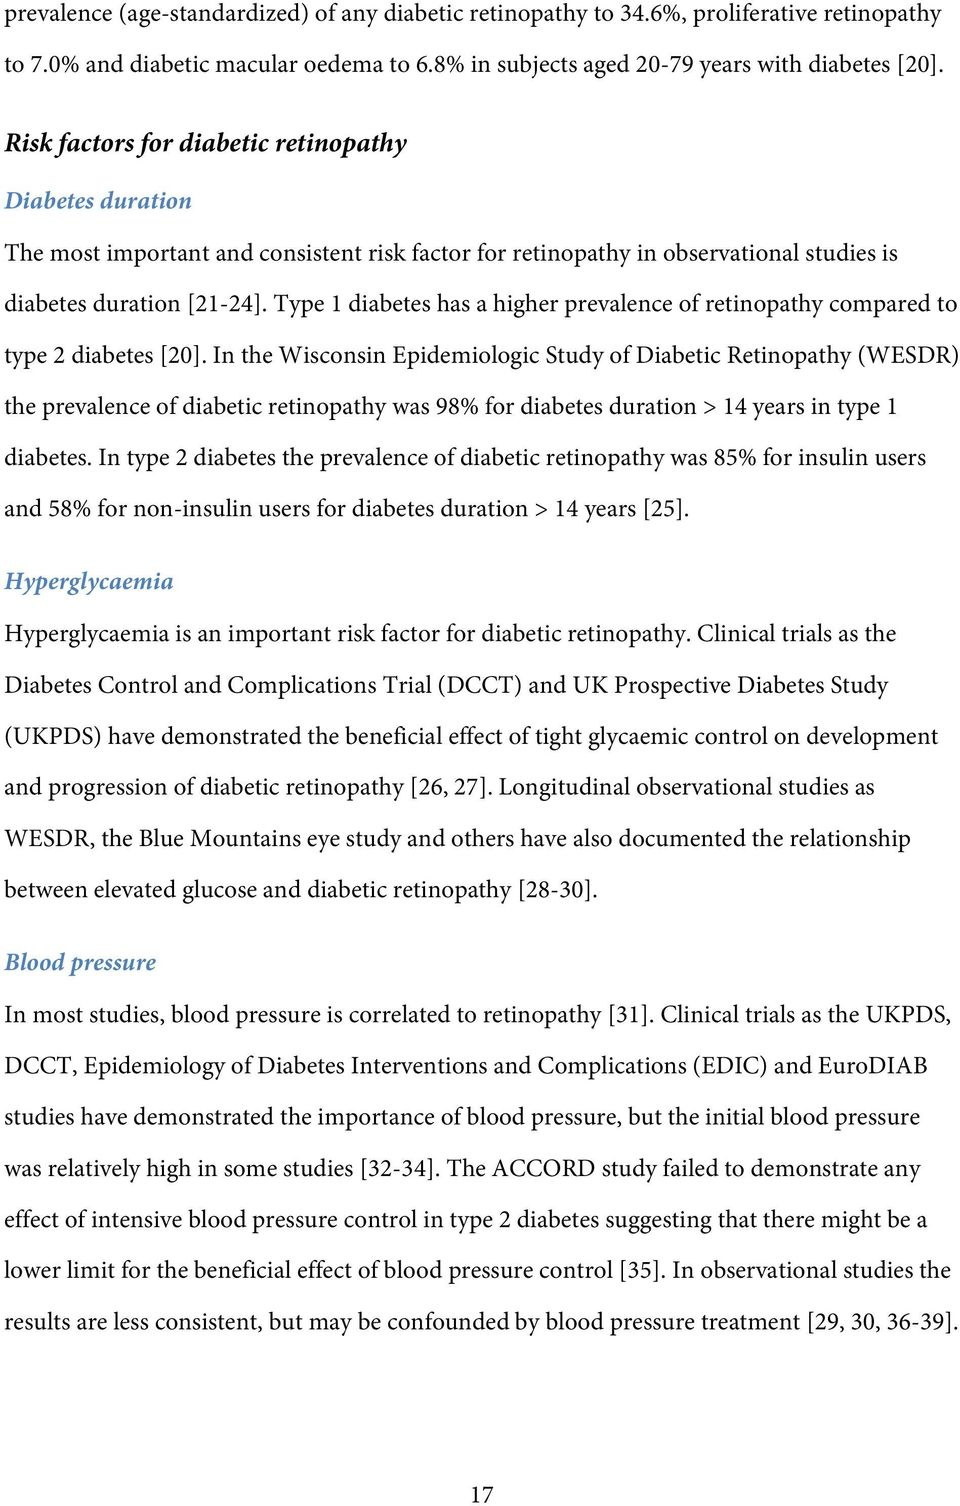 Type 1 diabetes has a higher prevalene of retinopathy ompared to type 2 diabetes [20].